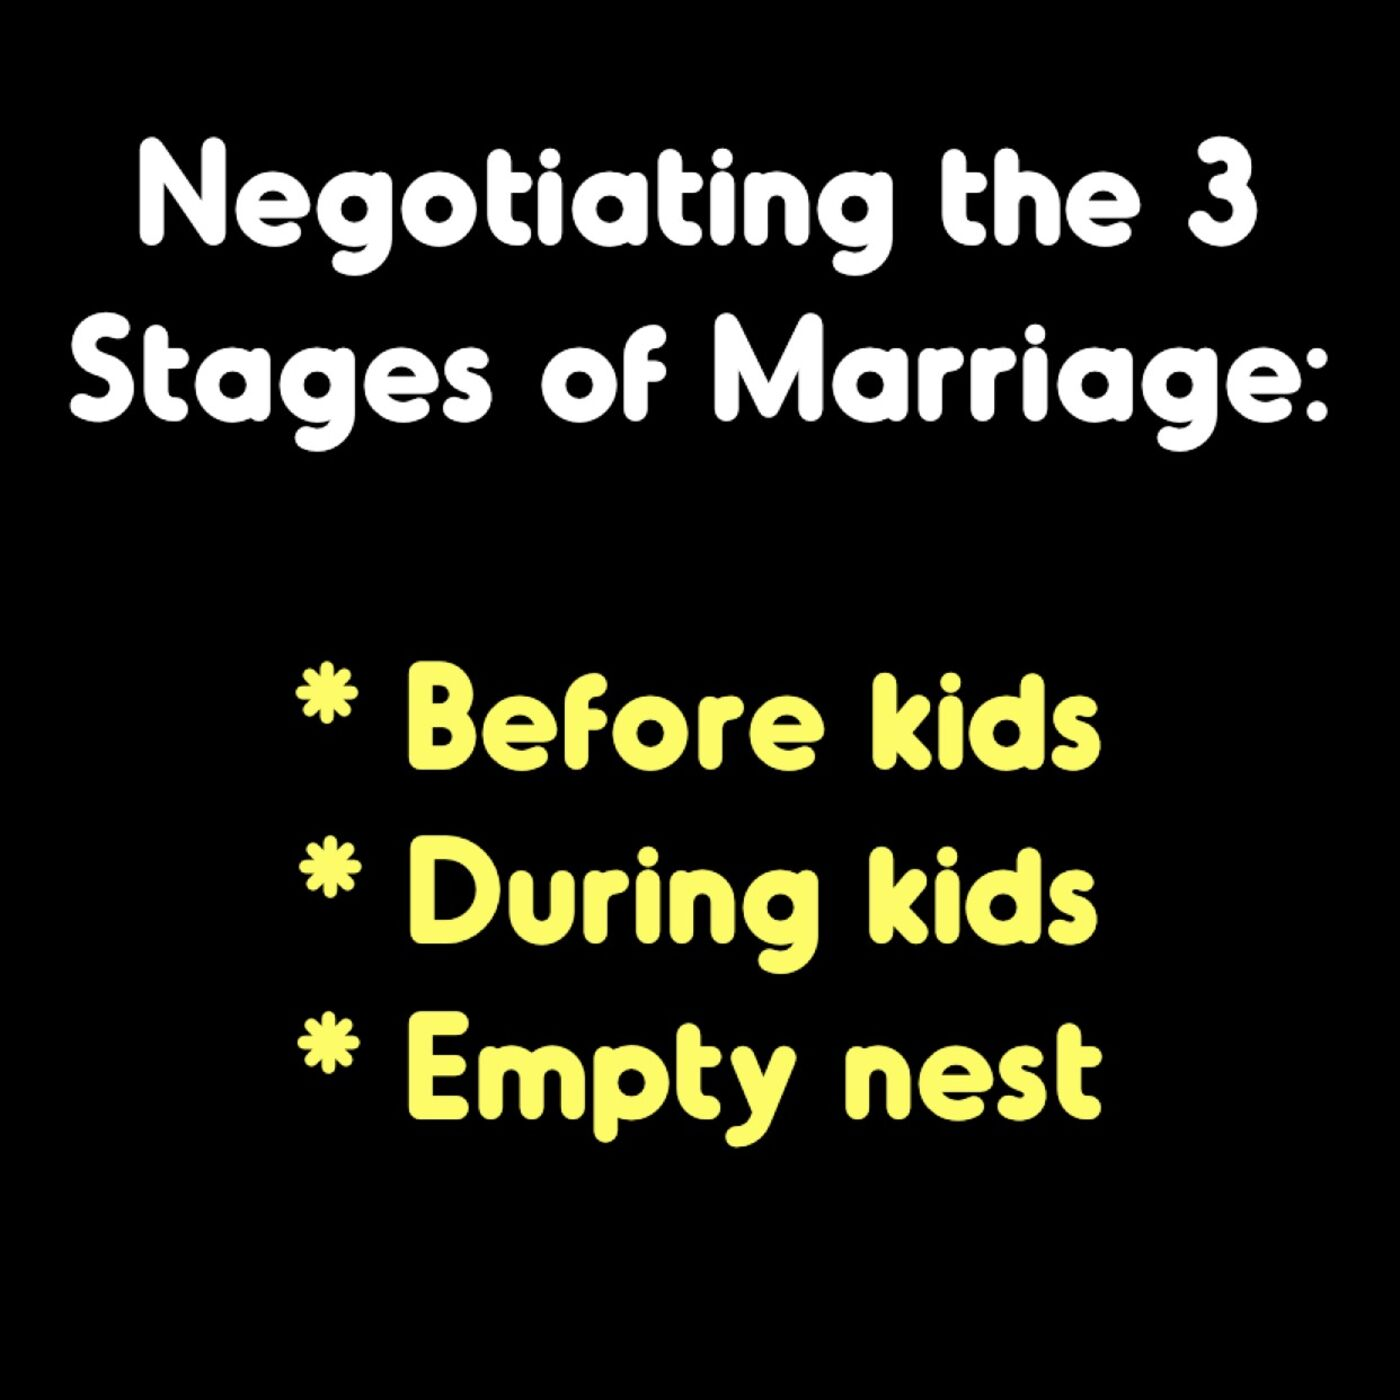 Negotiating The 3 Stages of Marriage